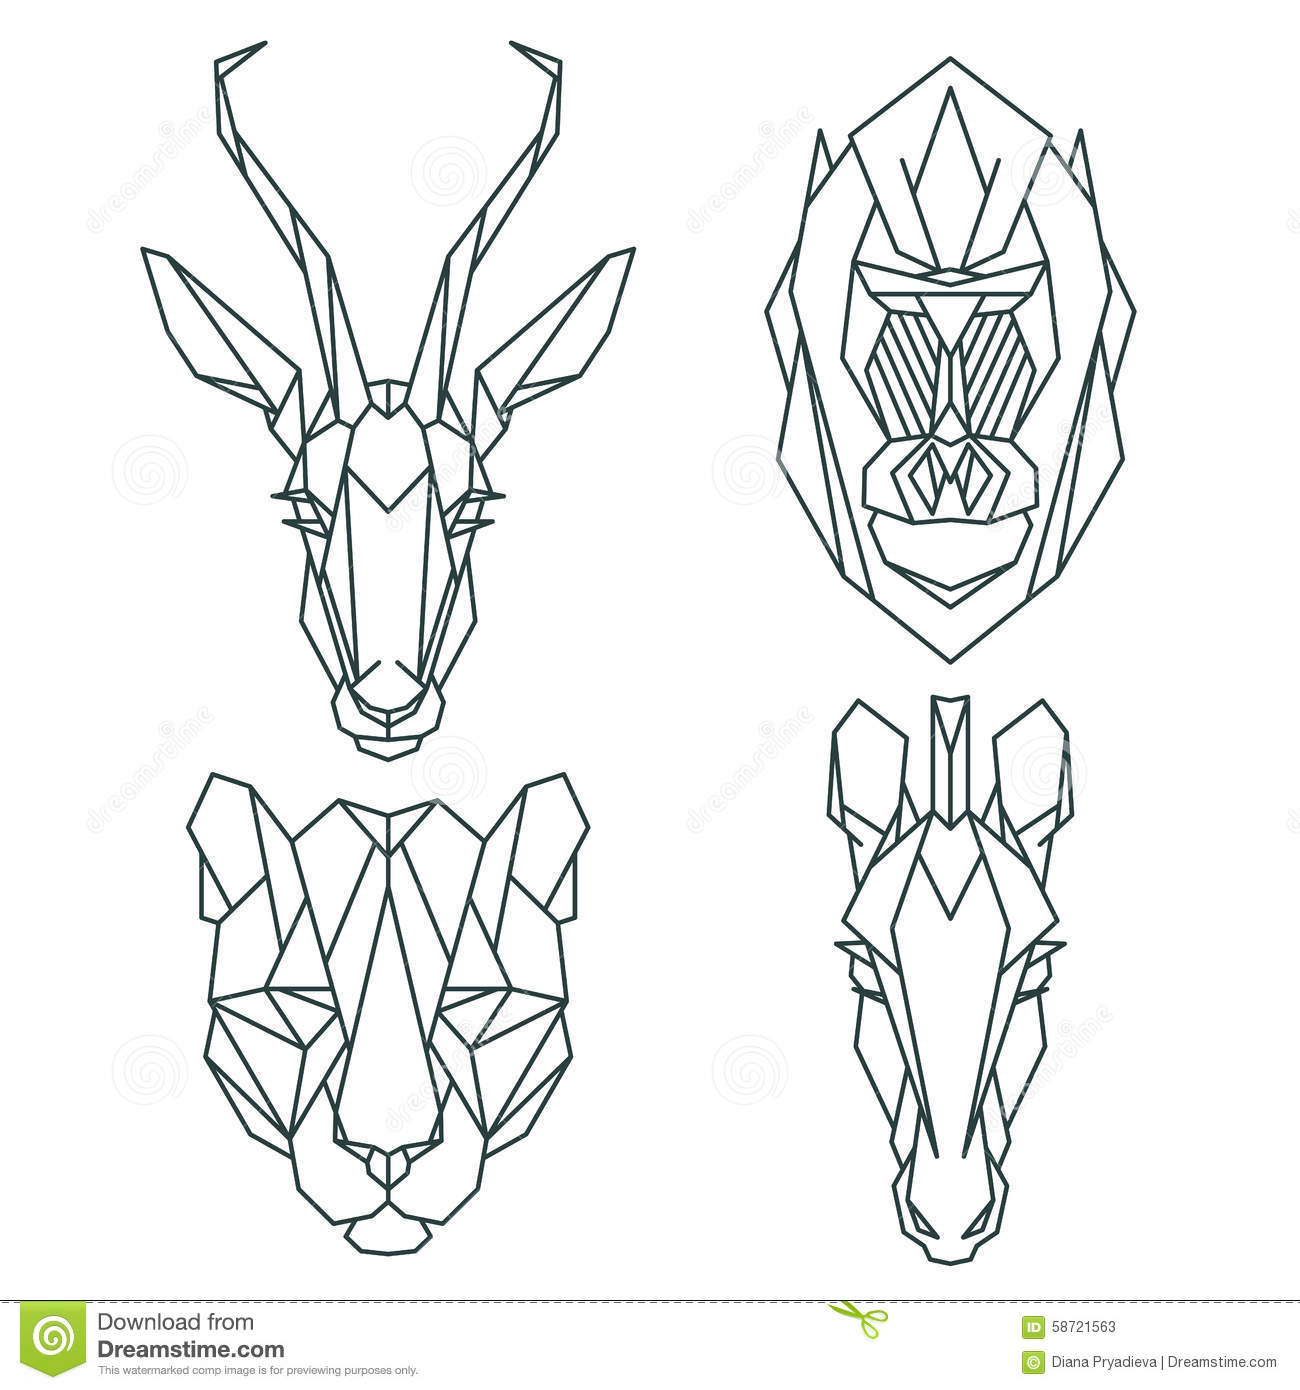 Line Art Design Tutorial : African animal icons vector icon set abstract triangular